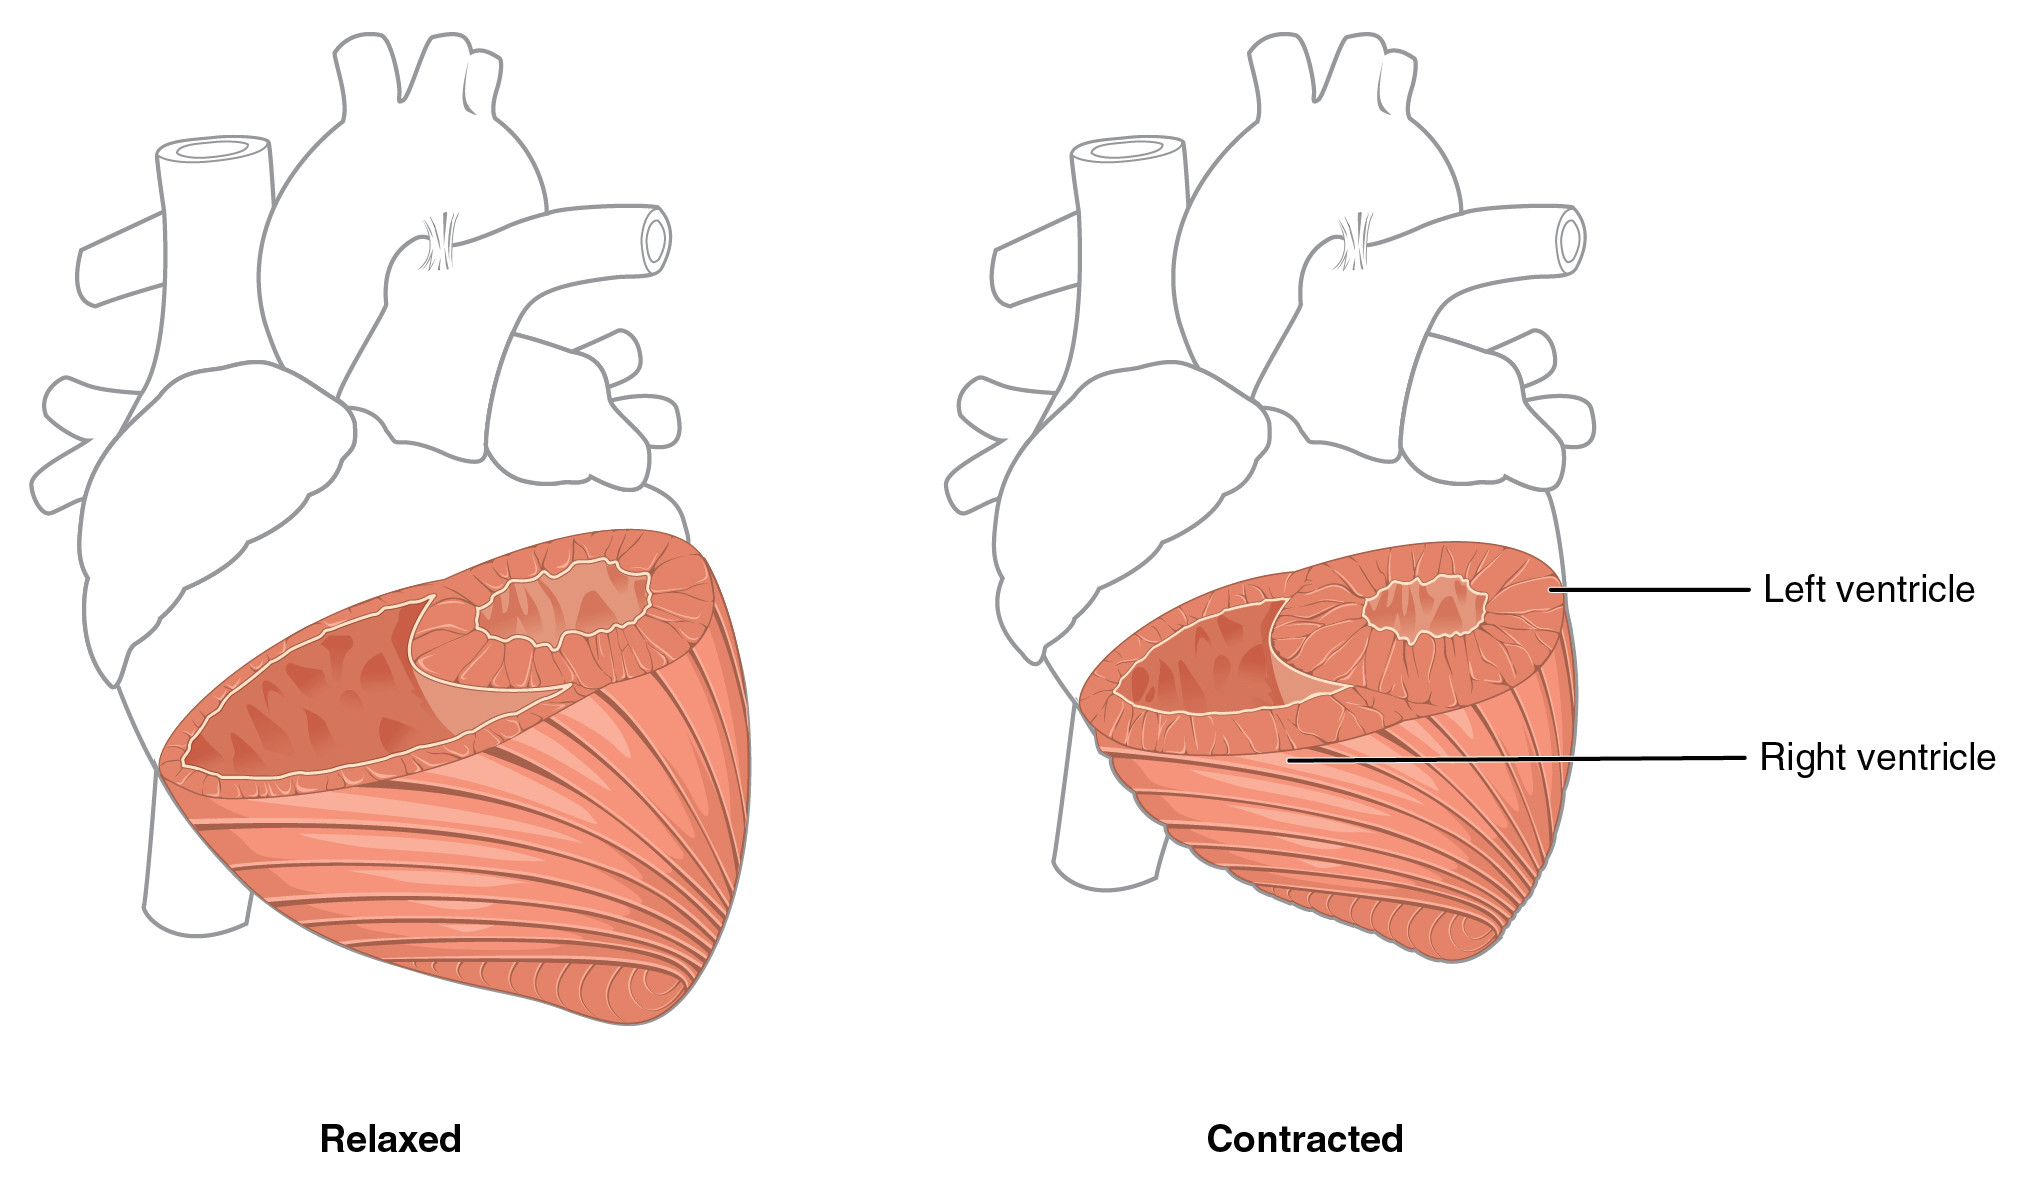 in this figure the left panel shows the muscles of the heart in the relaxed position